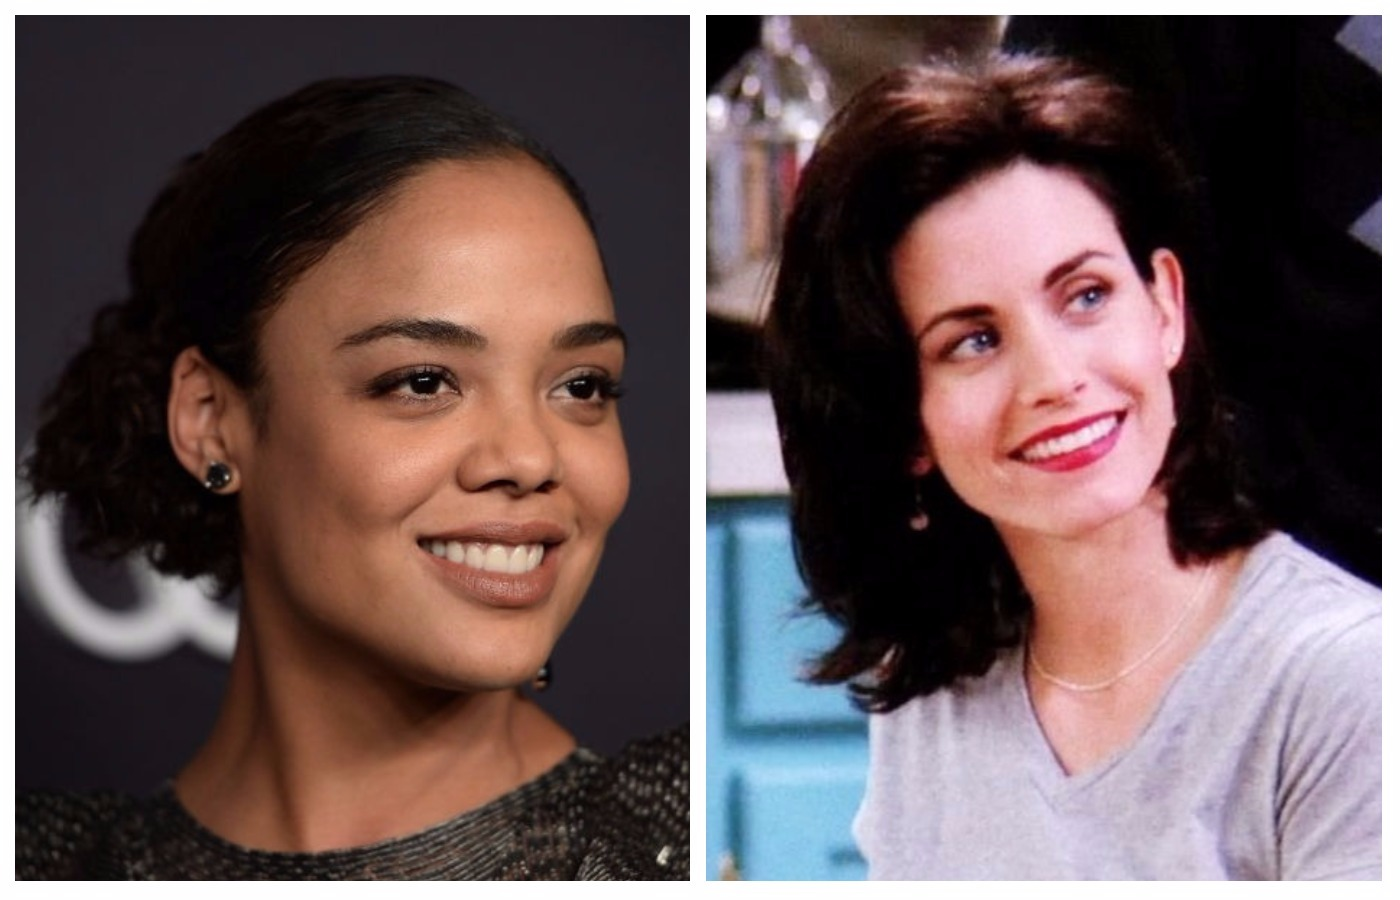 """Tessa Thompson is dying to know what Courteney Cox thought of her take on Monica Geller in """"Moonlight"""""""